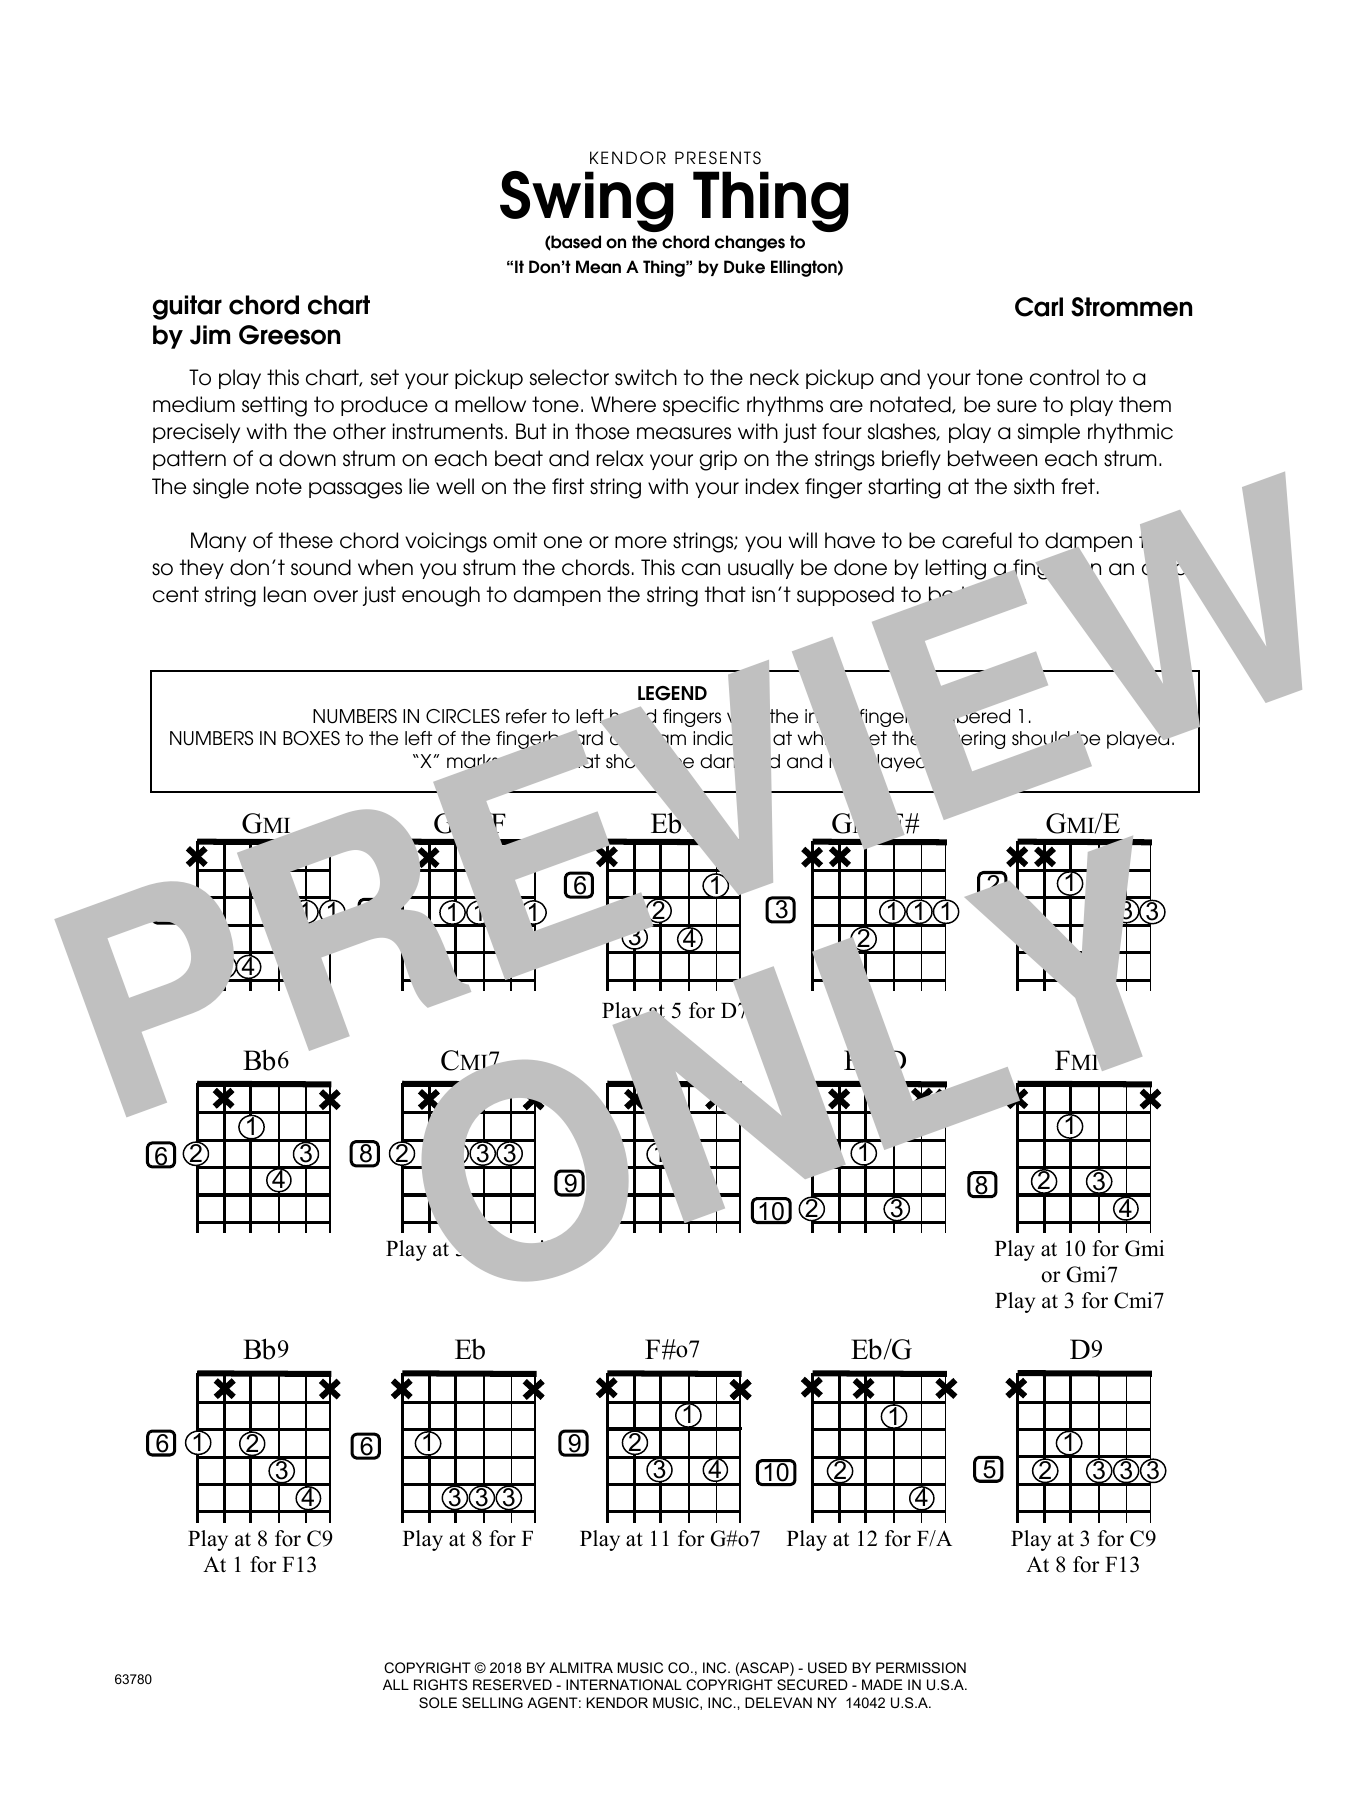 Carl Strommen Swing Thing - Guitar Chord Chart sheet music preview music notes and score for Jazz Ensemble including 1 page(s)